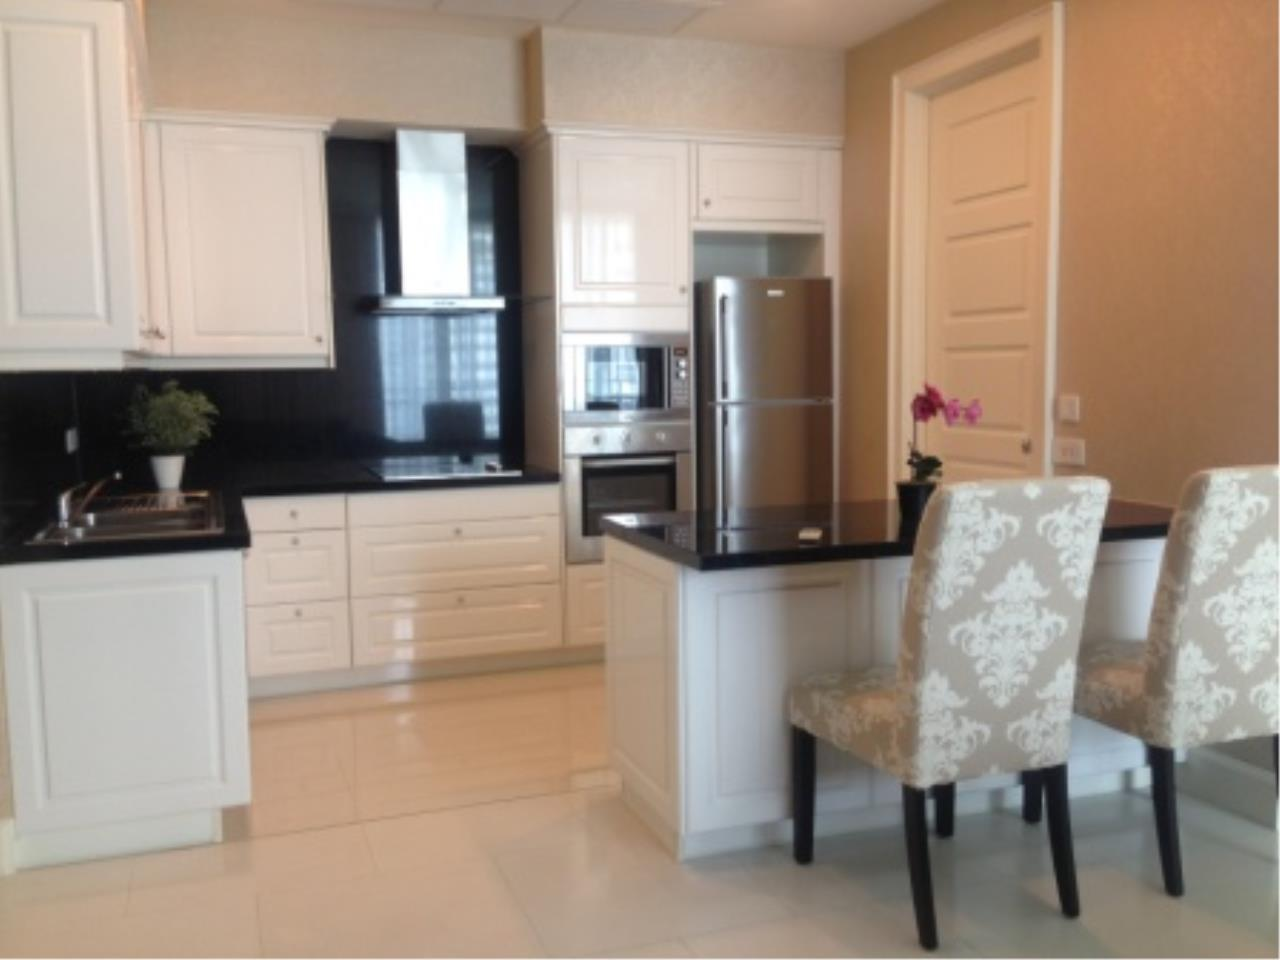 BKK Condos Agency's 3 bedroom condo for rent at The Royce Residence 6